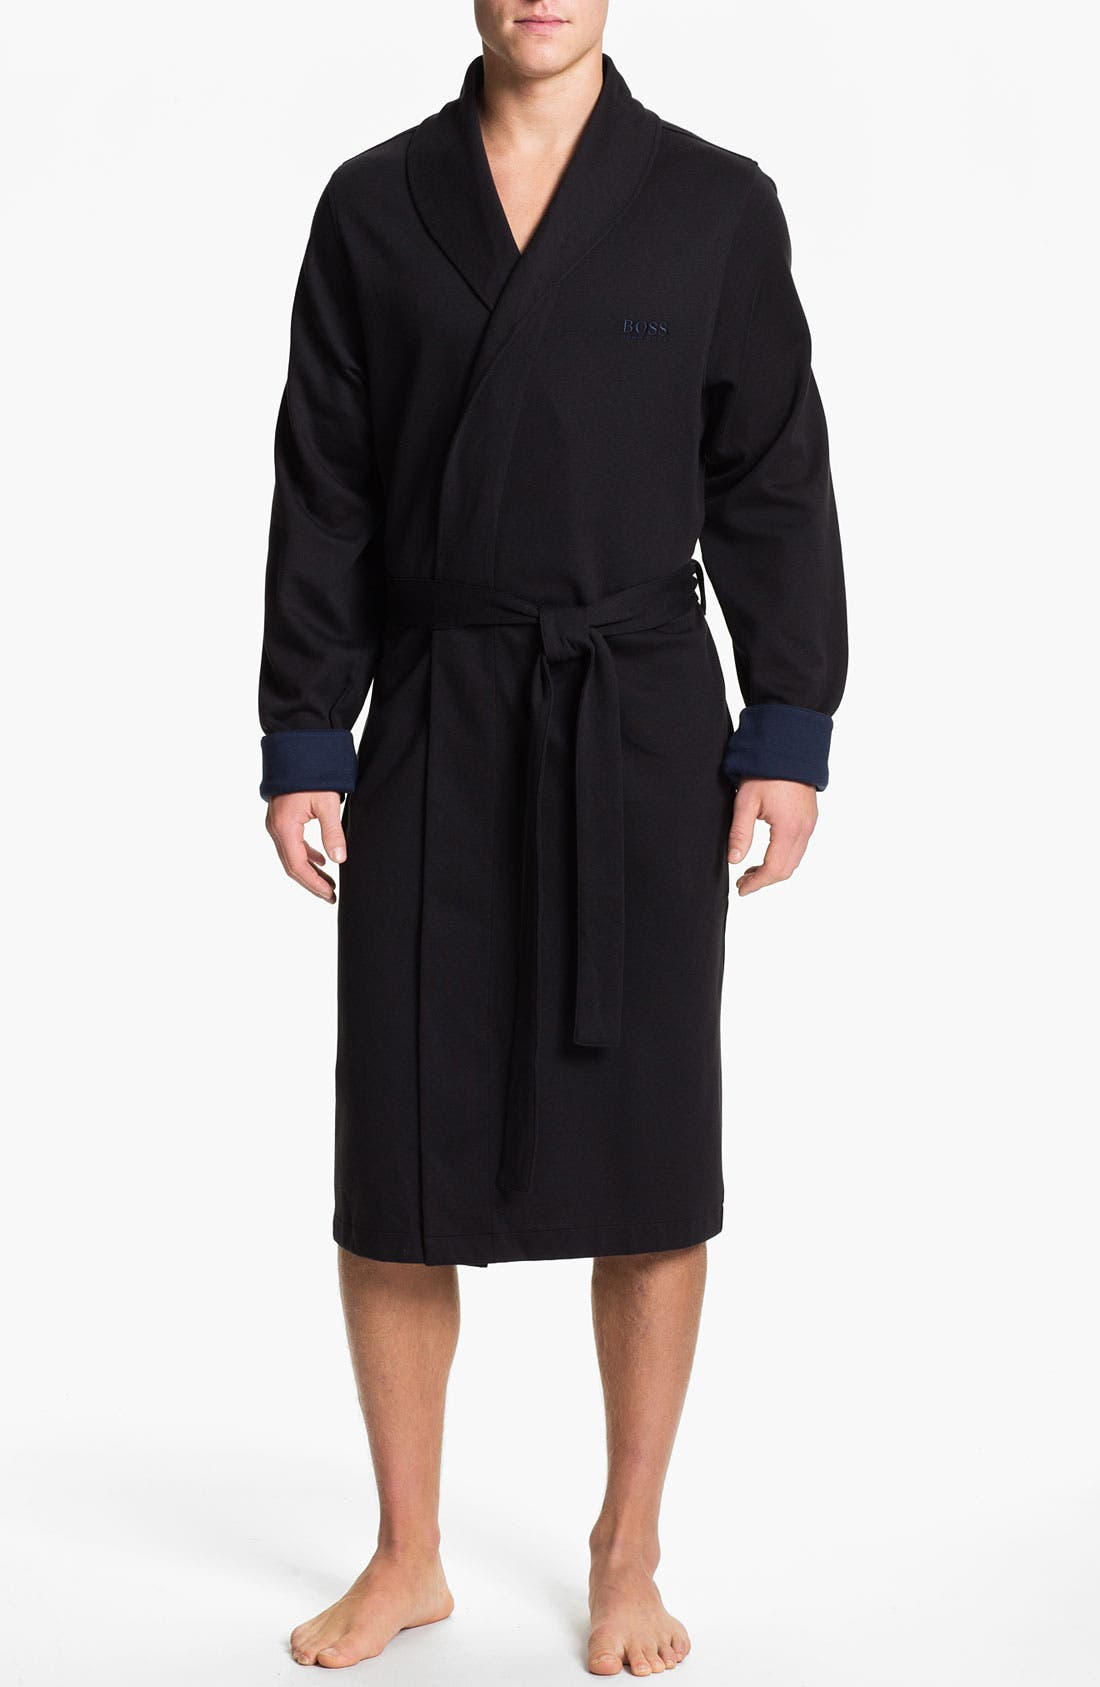 Alternate Image 1 Selected - BOSS HUGO BOSS 'Innovation 3' Shawl Collar Knit Robe